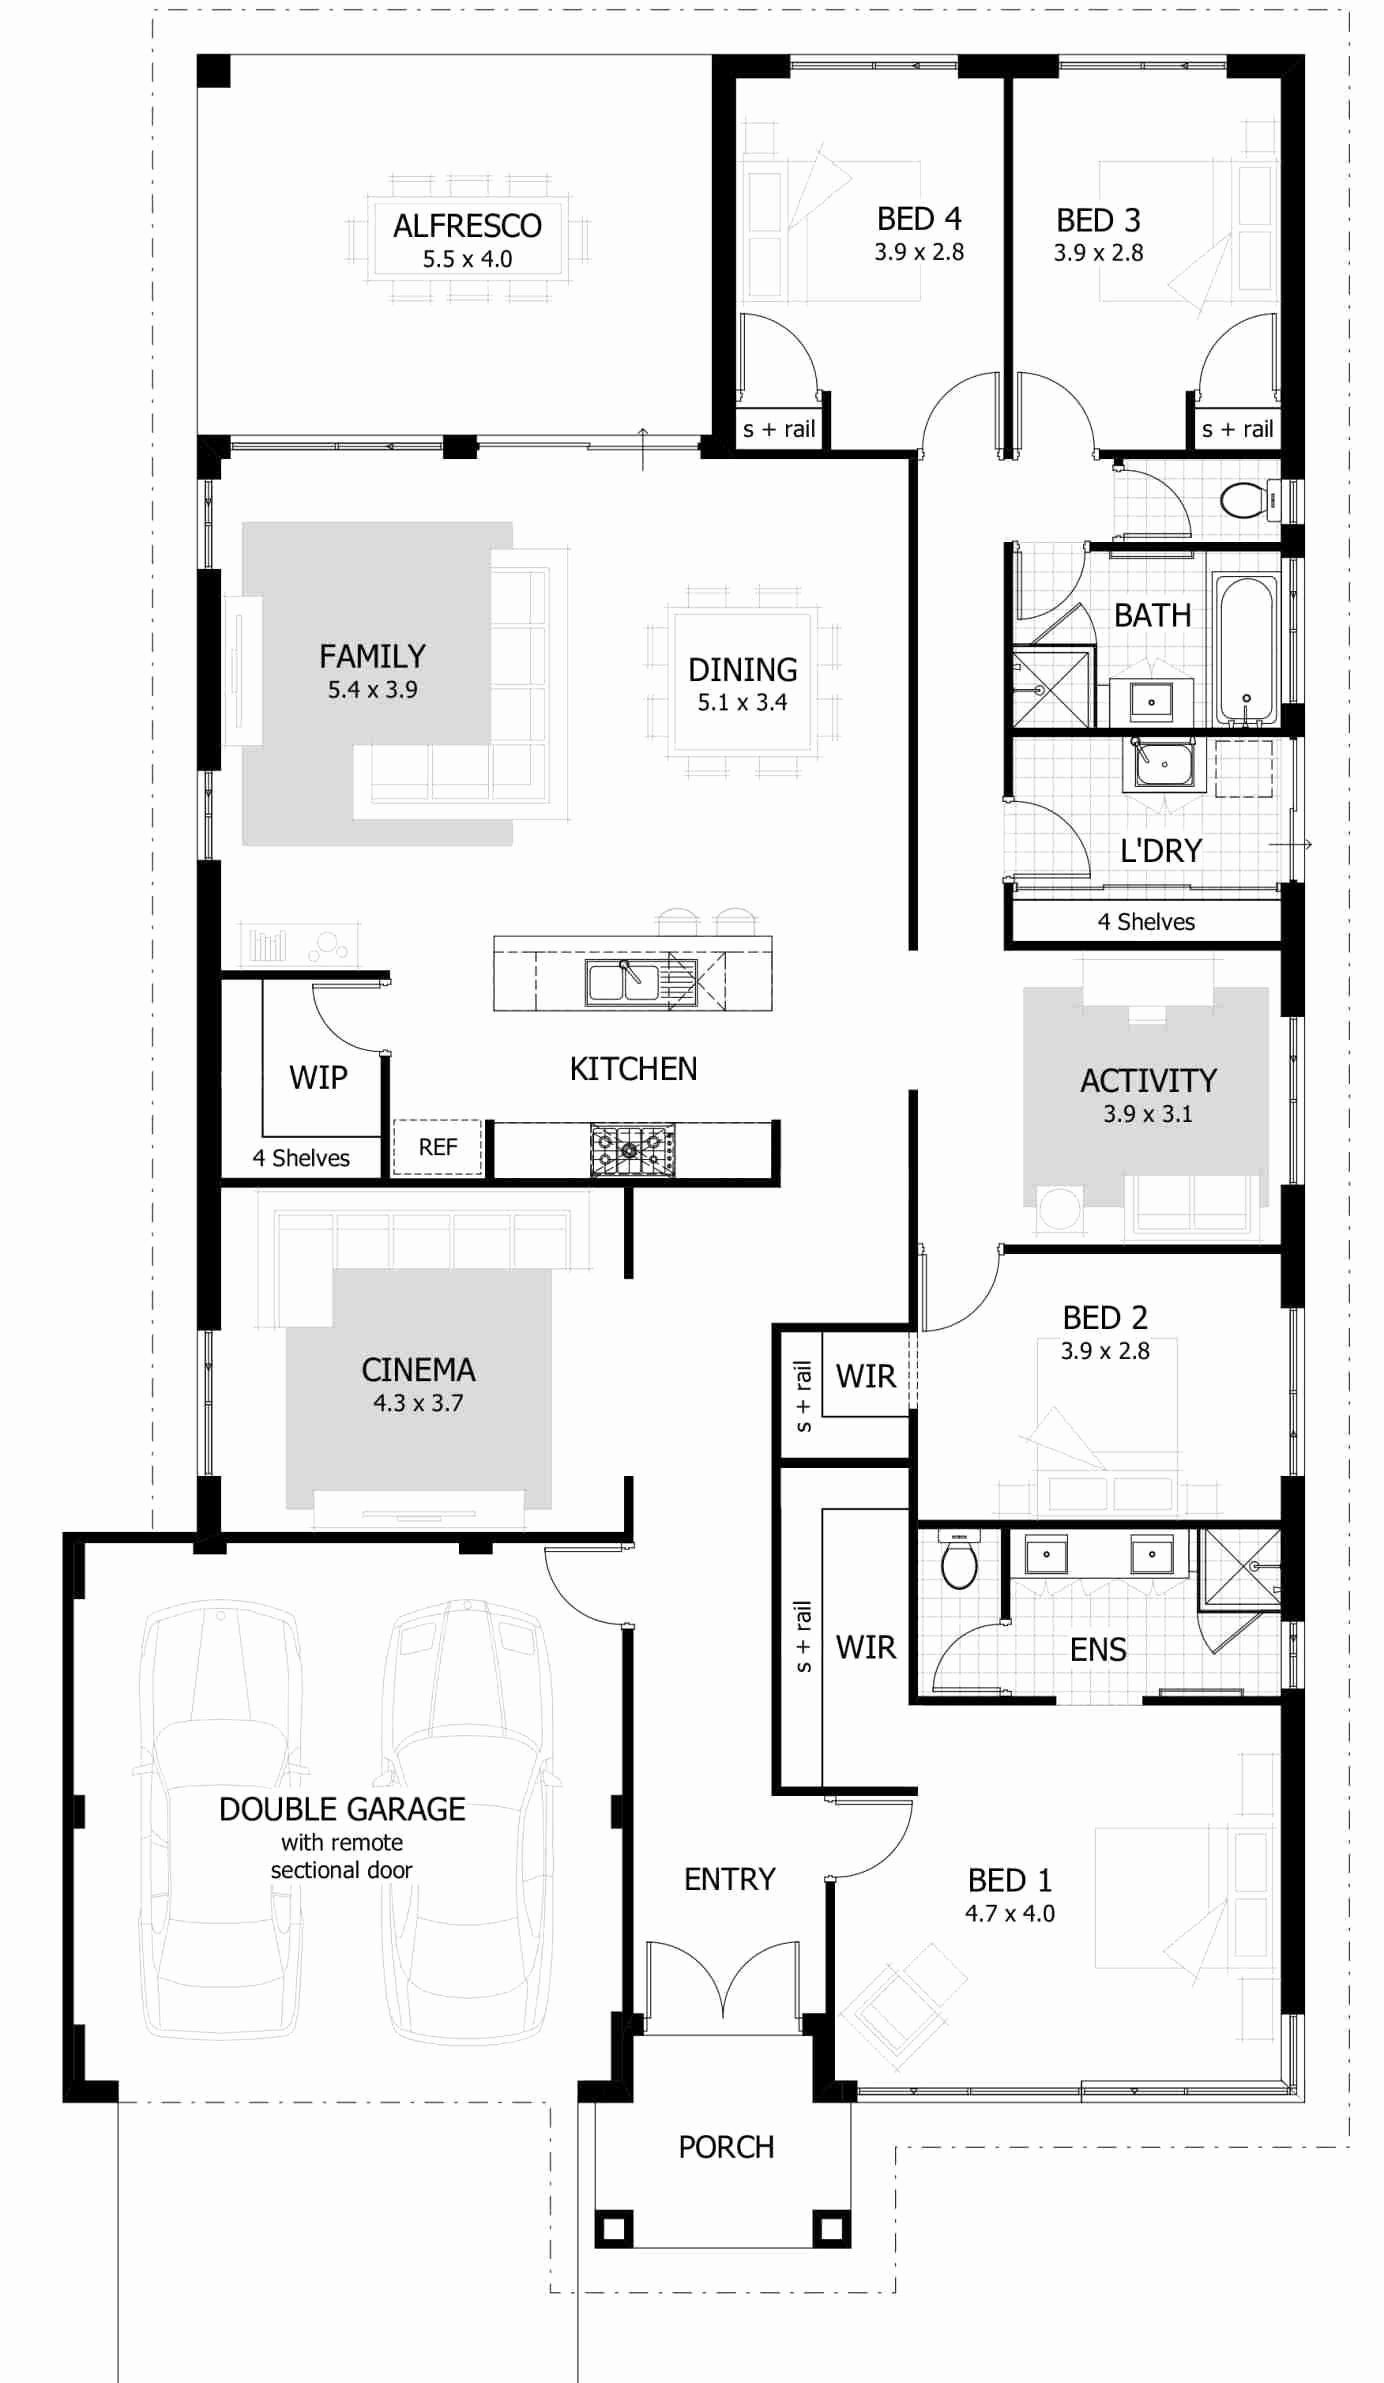 Free 4 Bedroom House Plans Beautiful Four Bedroom House Plan 4 Bedroom House Designs 4 Bedroo Castle House Plans 4 Bedroom House Plans Four Bedroom House Plans